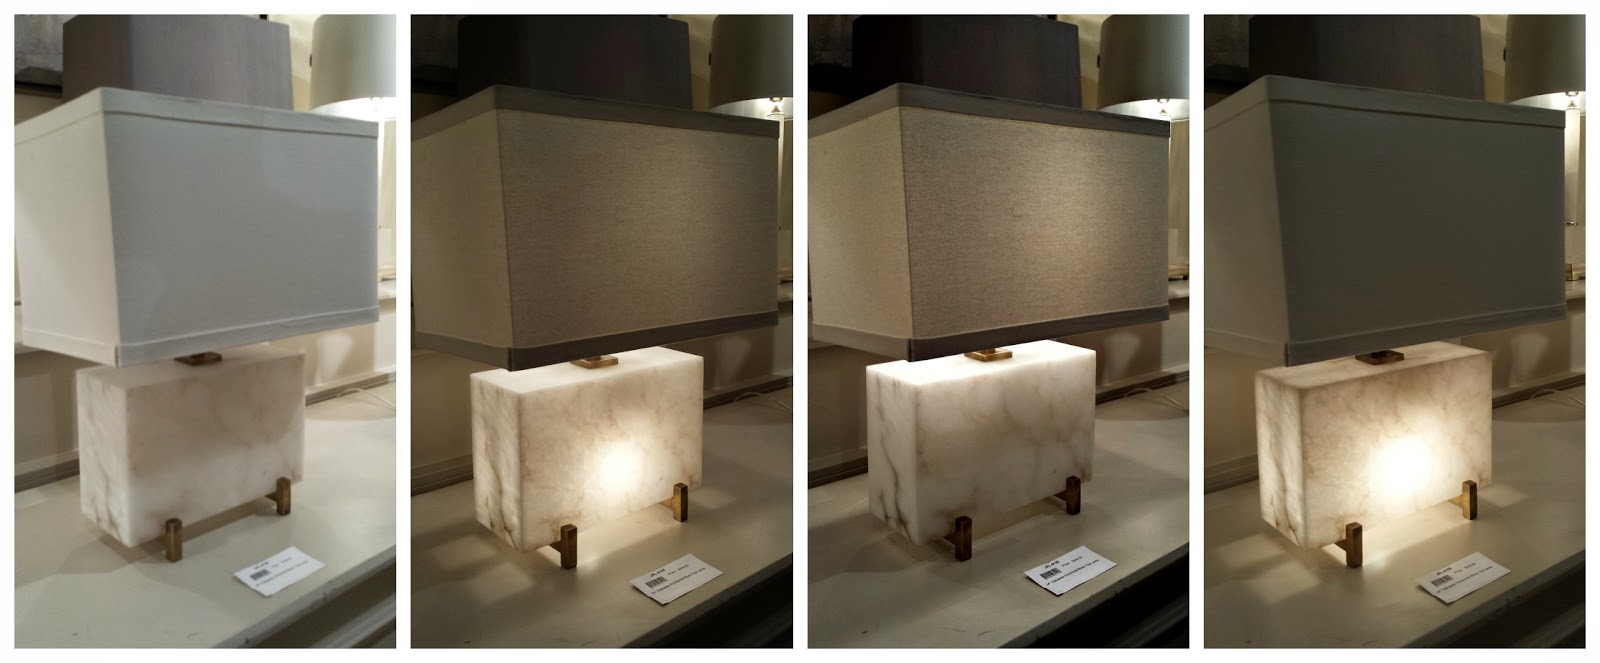 Focal point styling hpmkt design blogger tour john richard a unique stone table lamp including 4 different lighting options arubaitofo Gallery